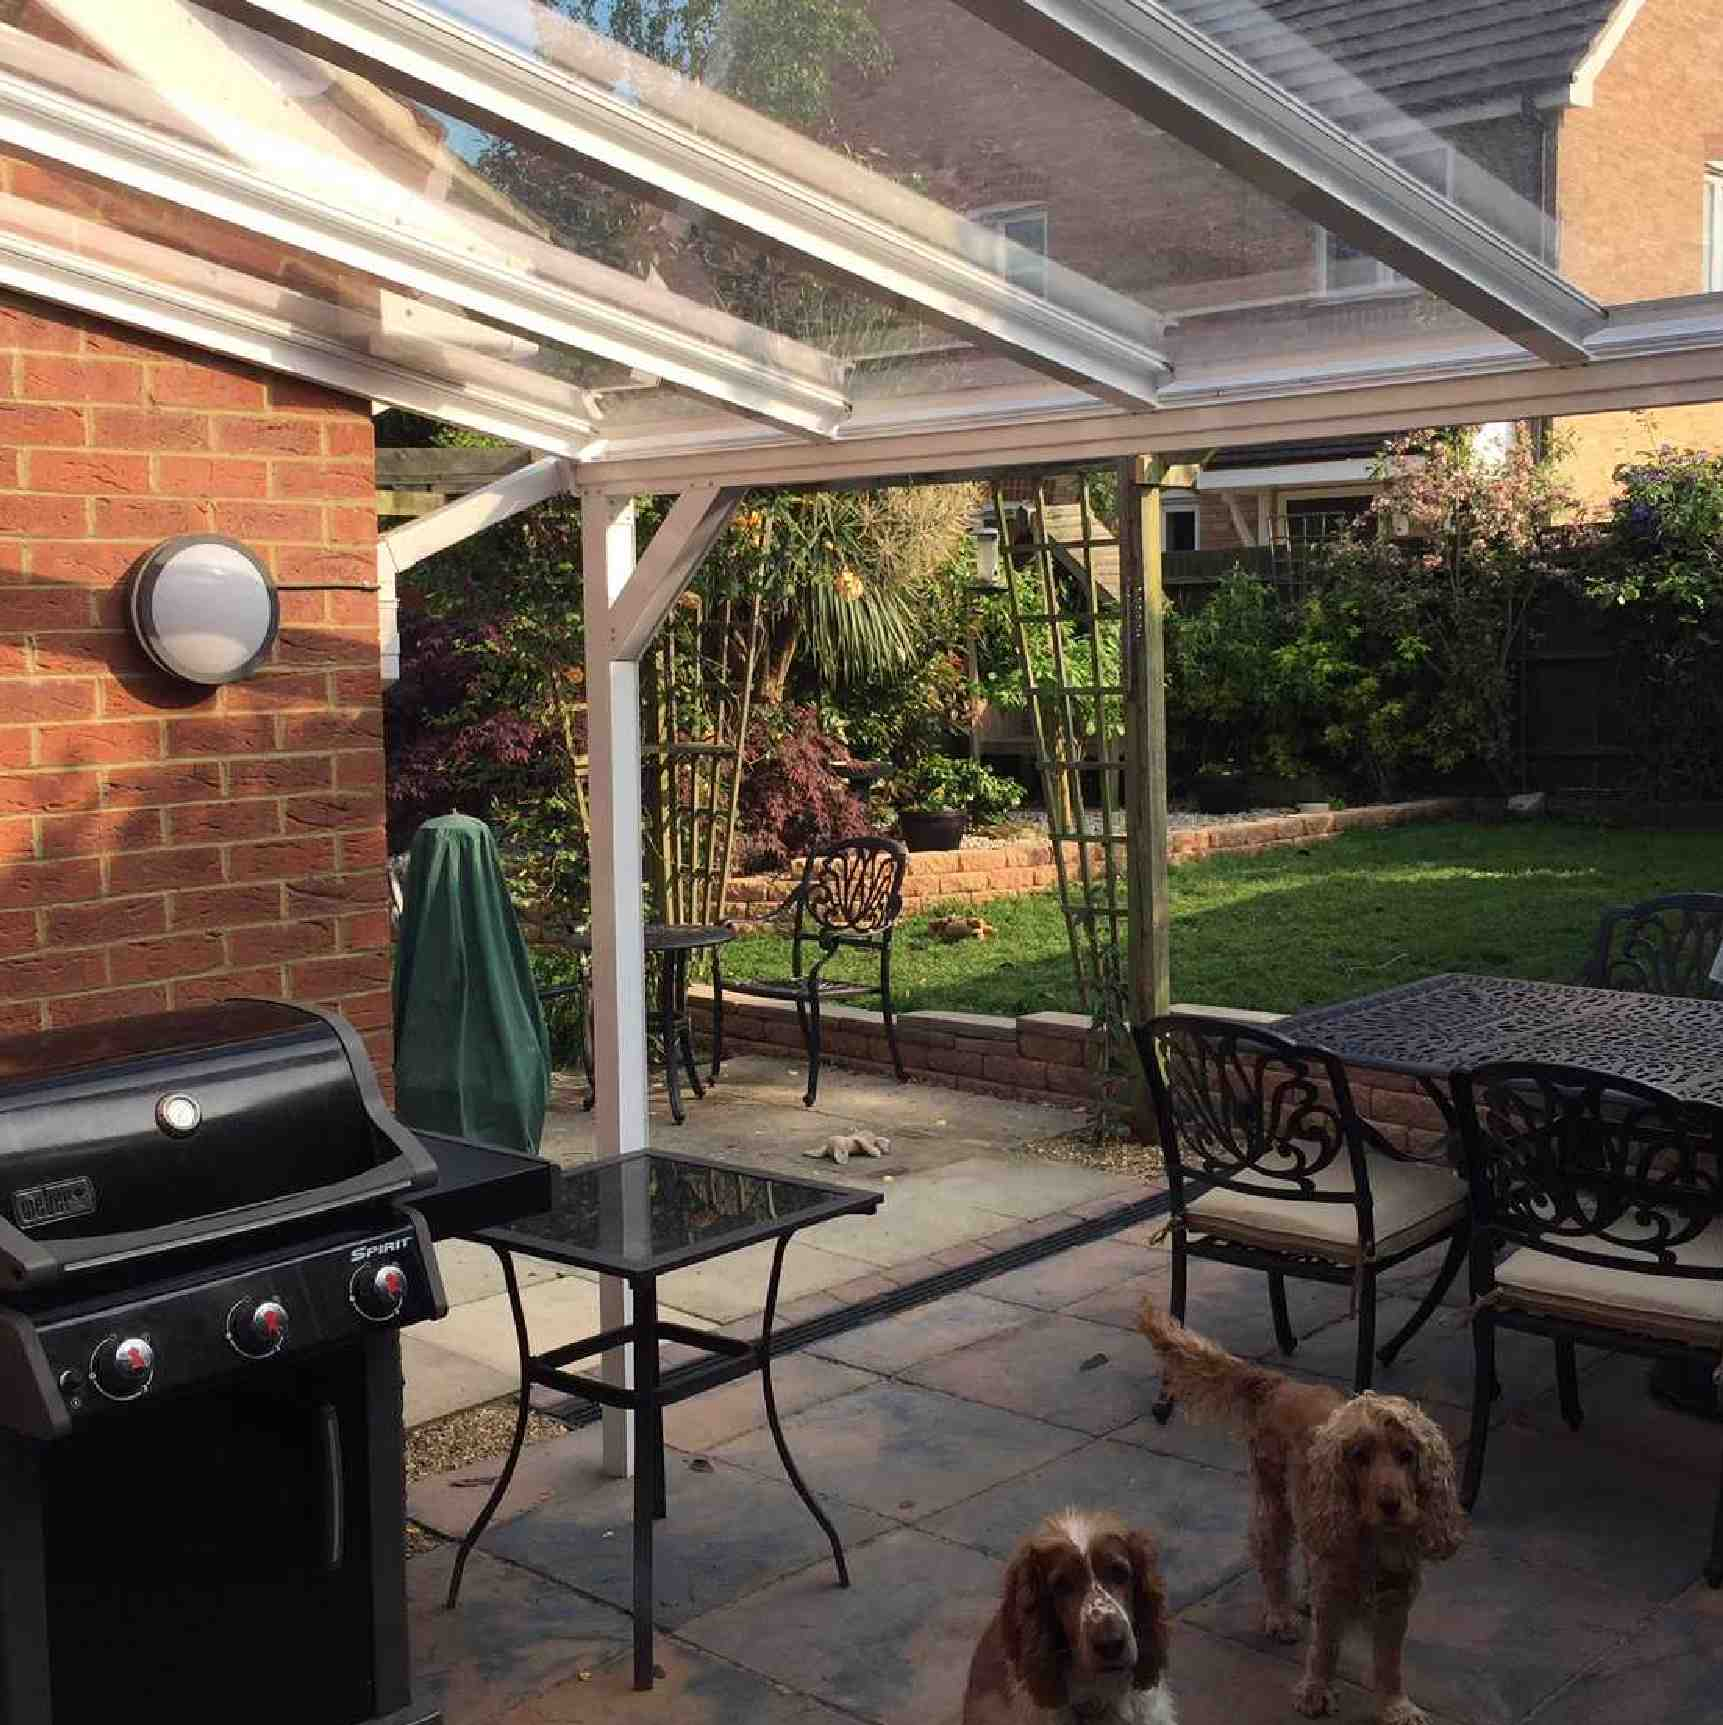 Omega Verandah with 16mm Polycarbonate Glazing - 11.2m (W) x 4.5m (P), (5) Supporting Posts